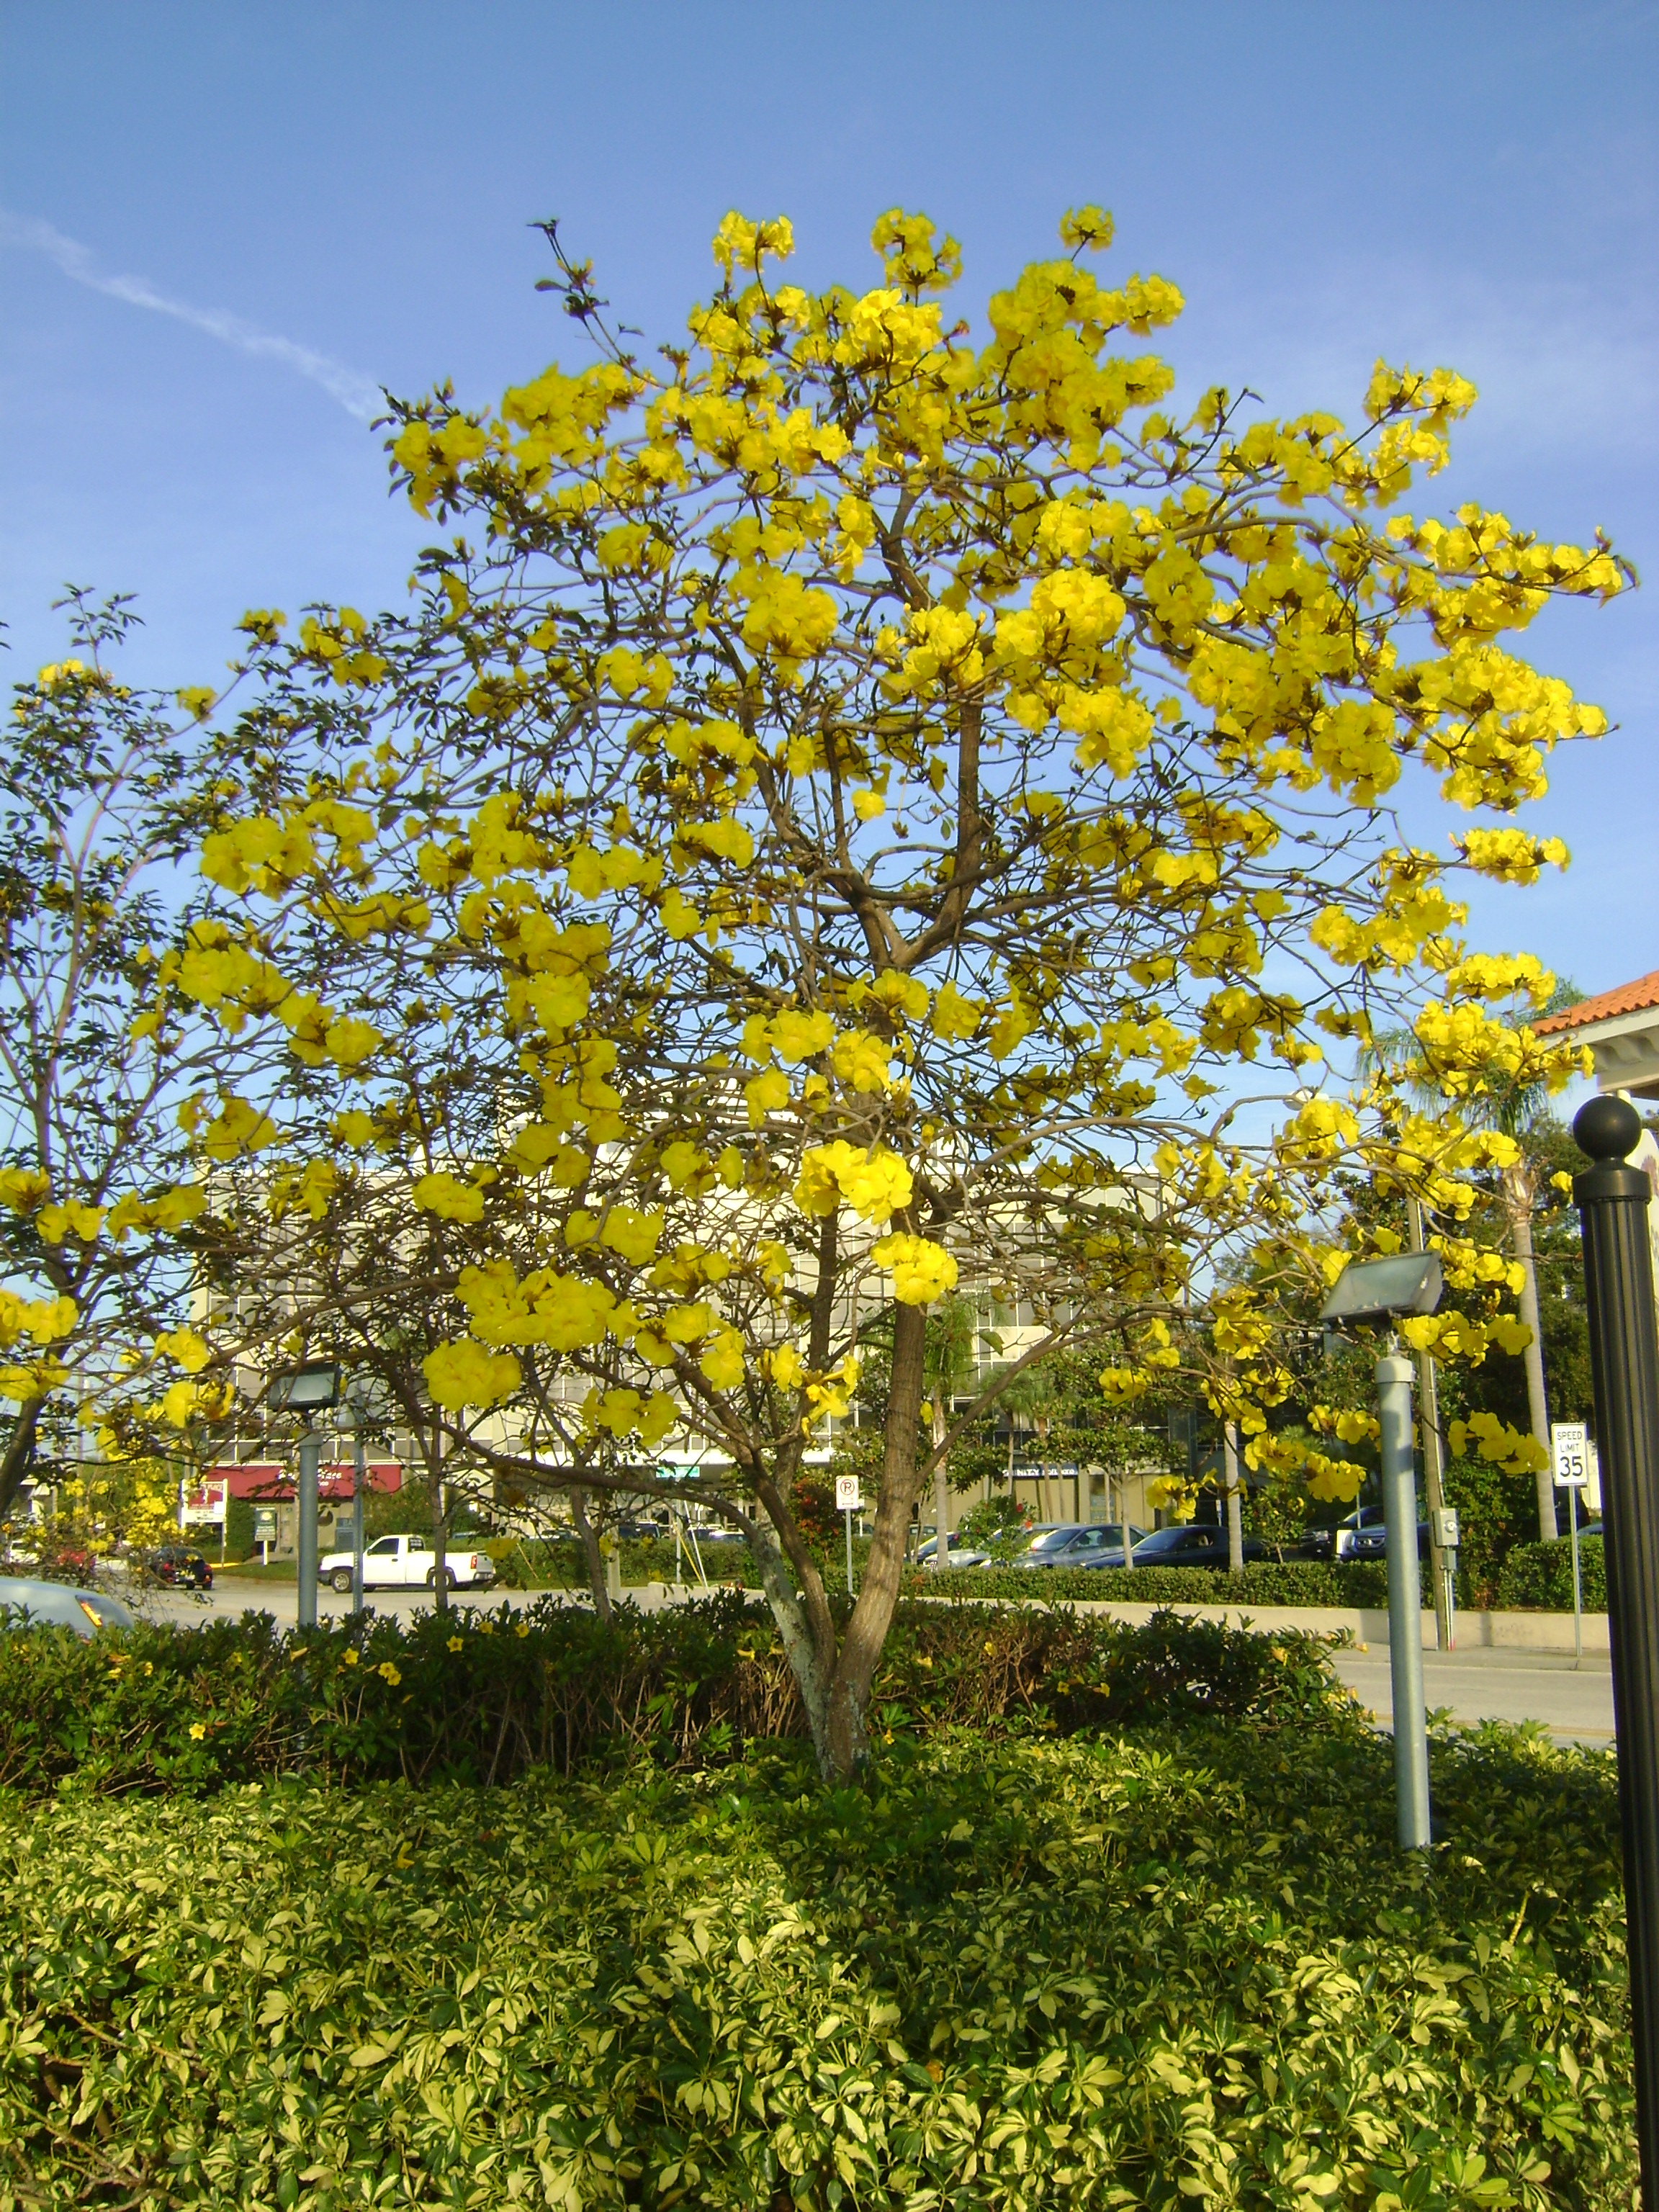 Buy tabebuia flowering trees for sale in orlando kissimmee yellow tabebuia mightylinksfo Image collections